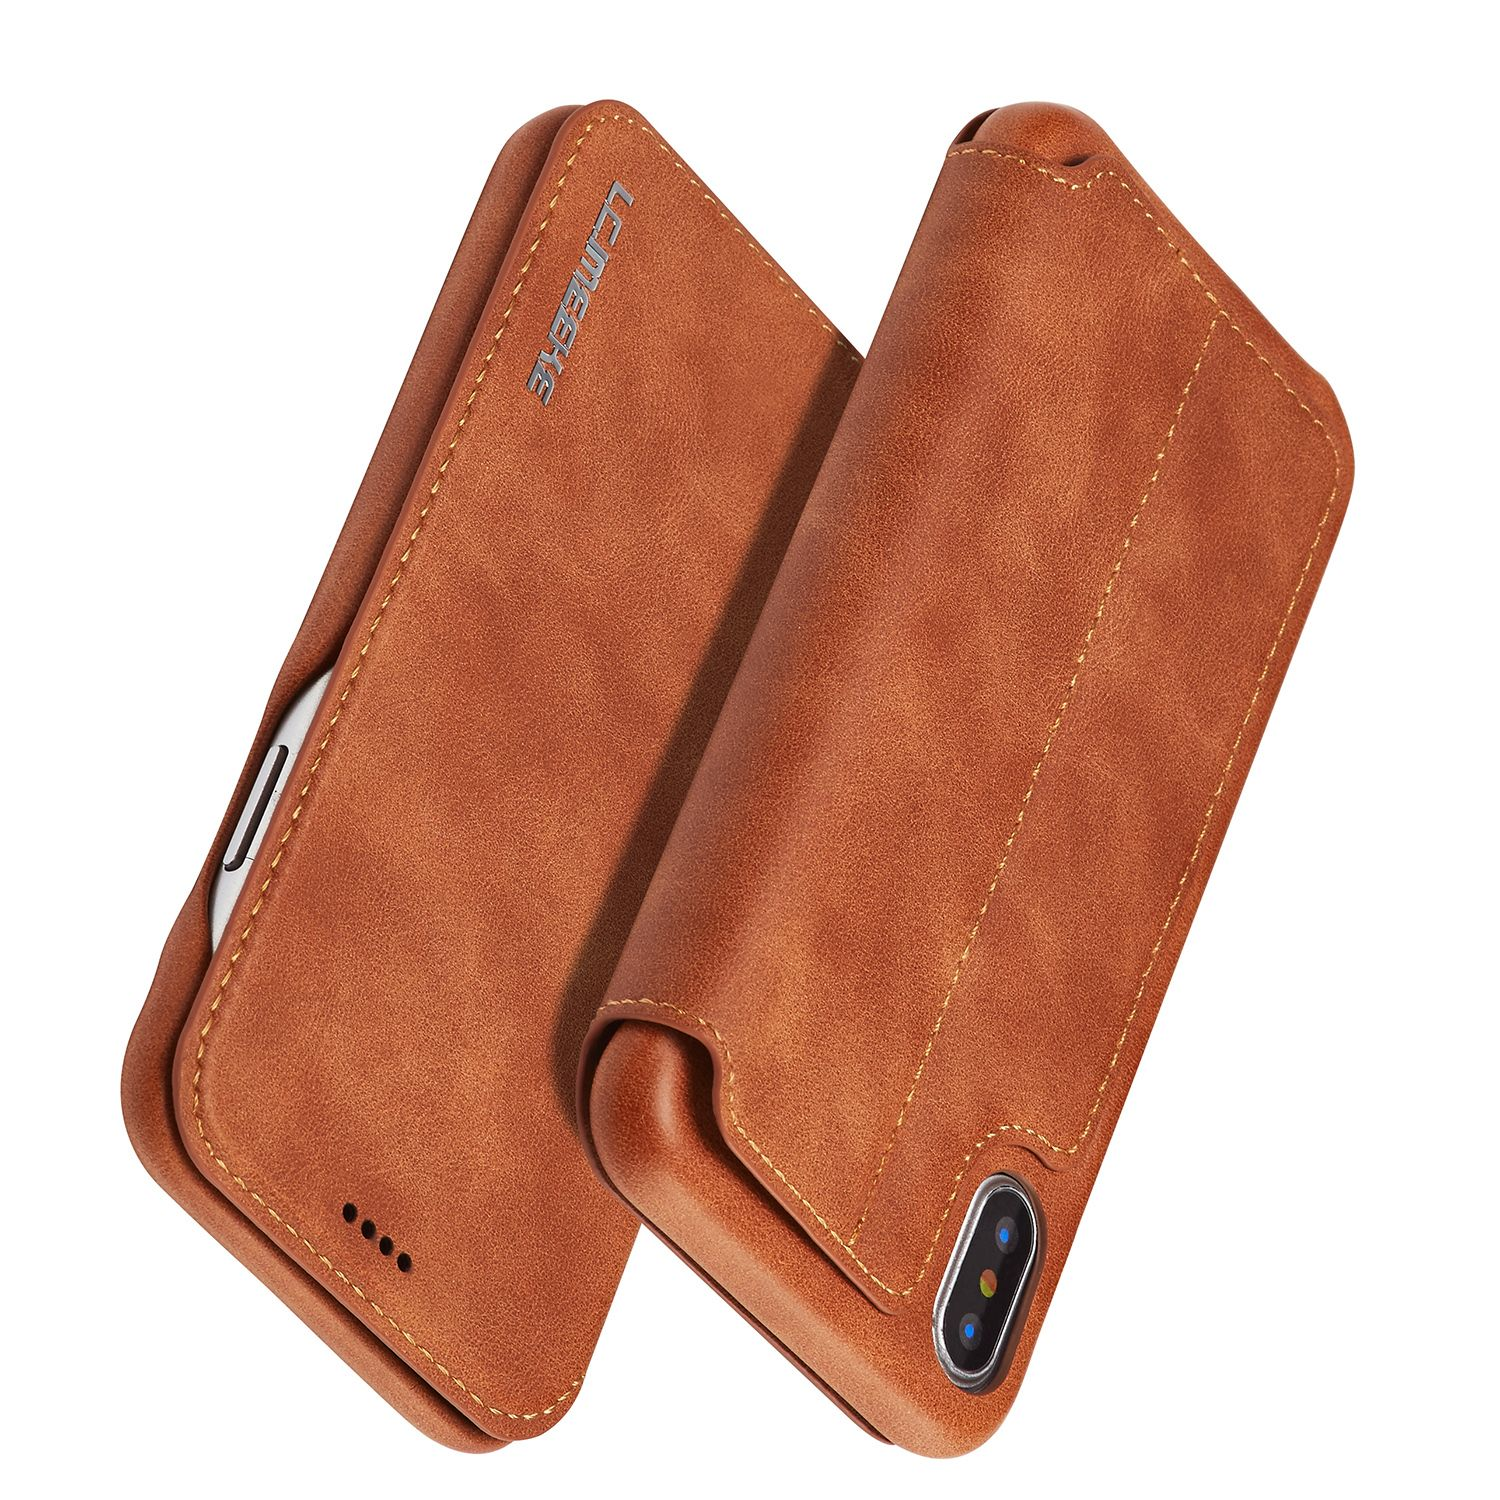 iPhone X XS 5.8 inch Leather Case Apple iphone, Iphone